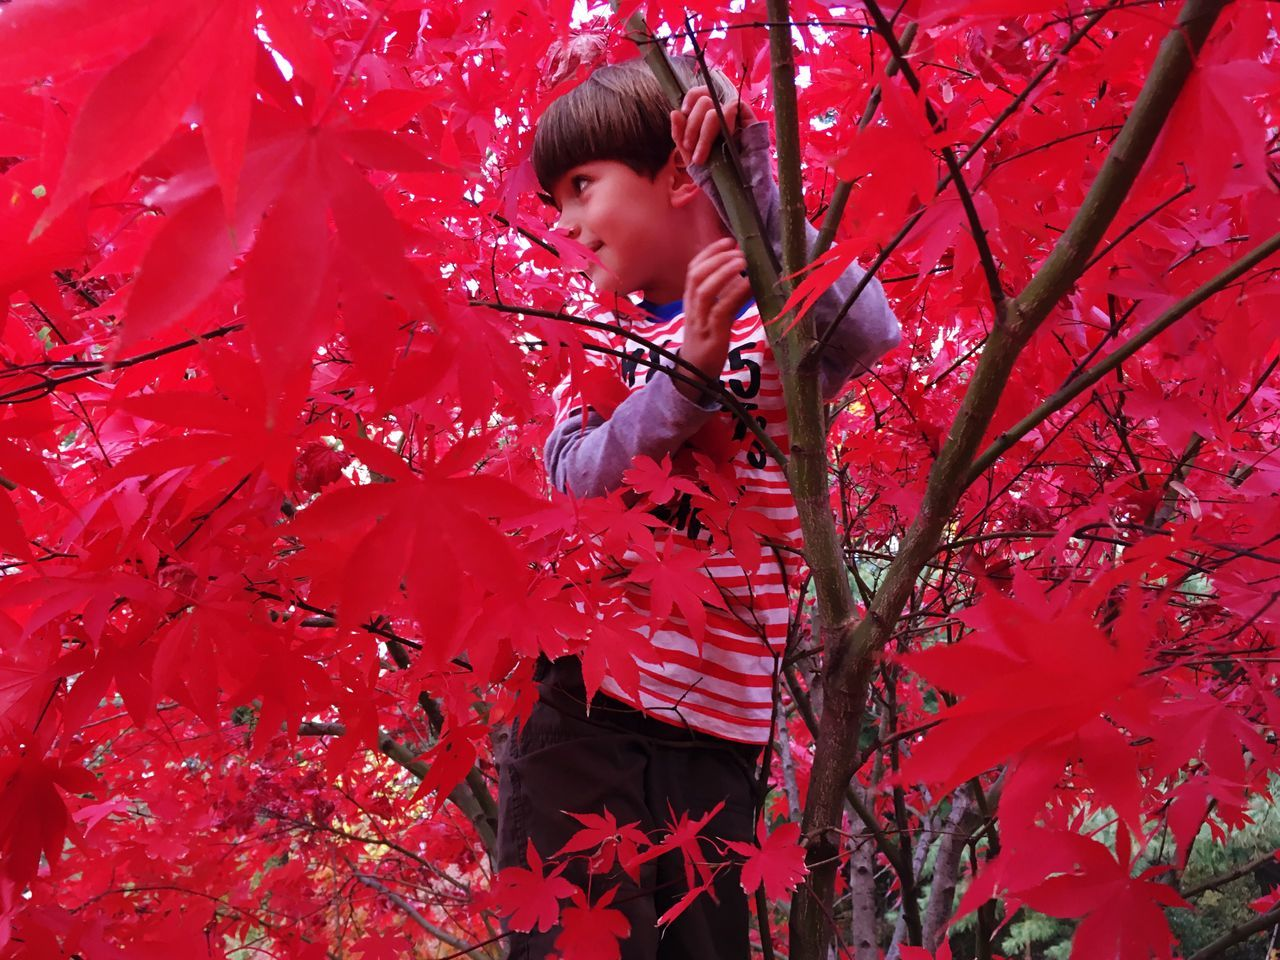 Red One Person Lifestyles Autumn Childhood Leisure Activity Real People Outdoors Growth Nature Tree Day Beauty In Nature Maple Leaf People Climbing Hiding Camouflage Fun Playing